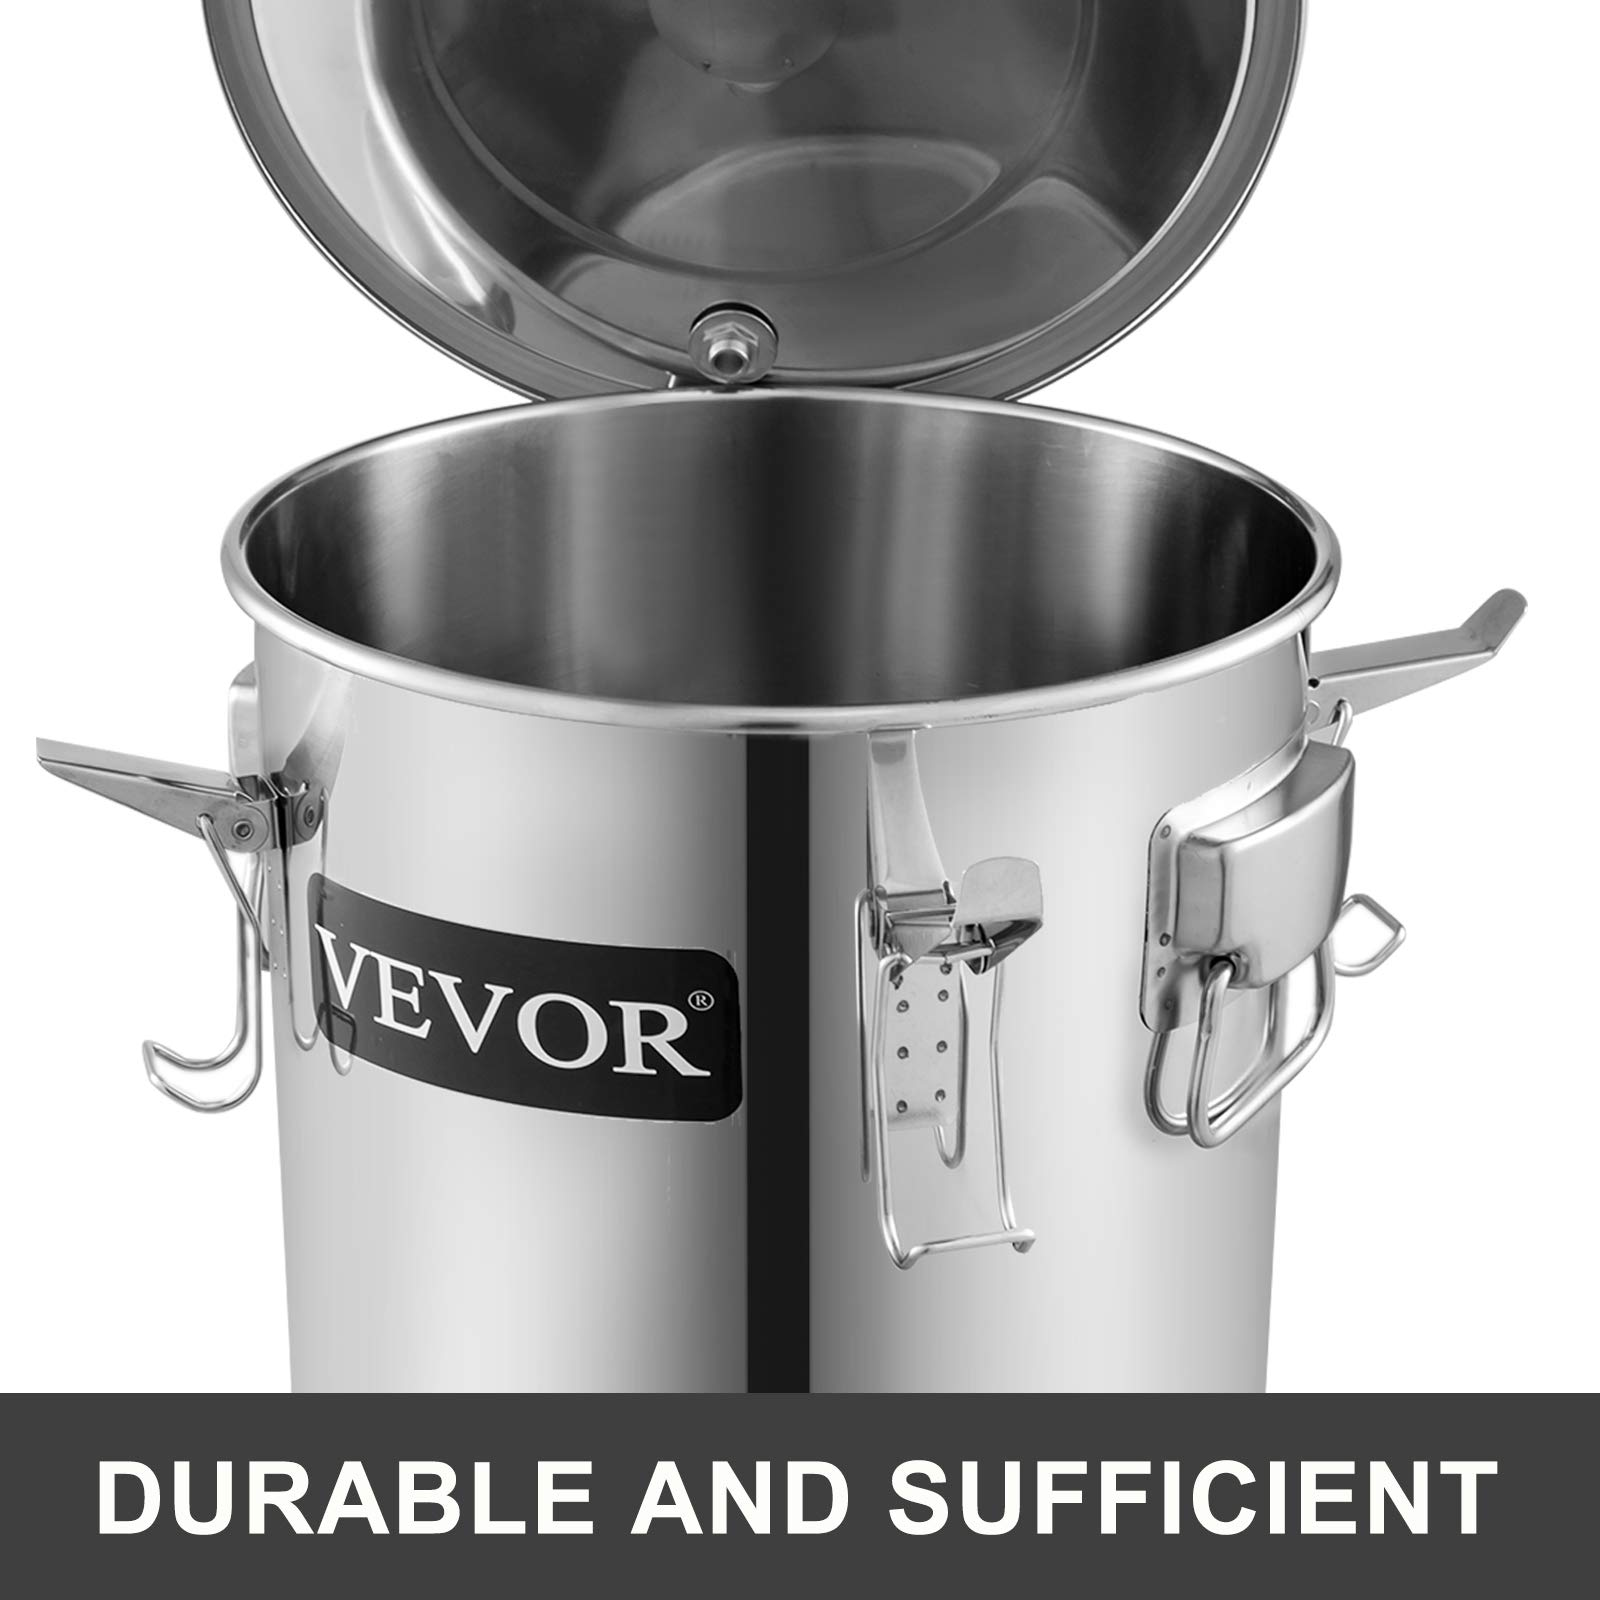 VEVOR Moonshine Still 5 Gal 21L Stainless Steel Water Alcohol Distiller Copper Tube Home Brewing Kit Build-in Thermometer for DIY Whisky Wine Brandy, 3 pots by VEVOR (Image #3)